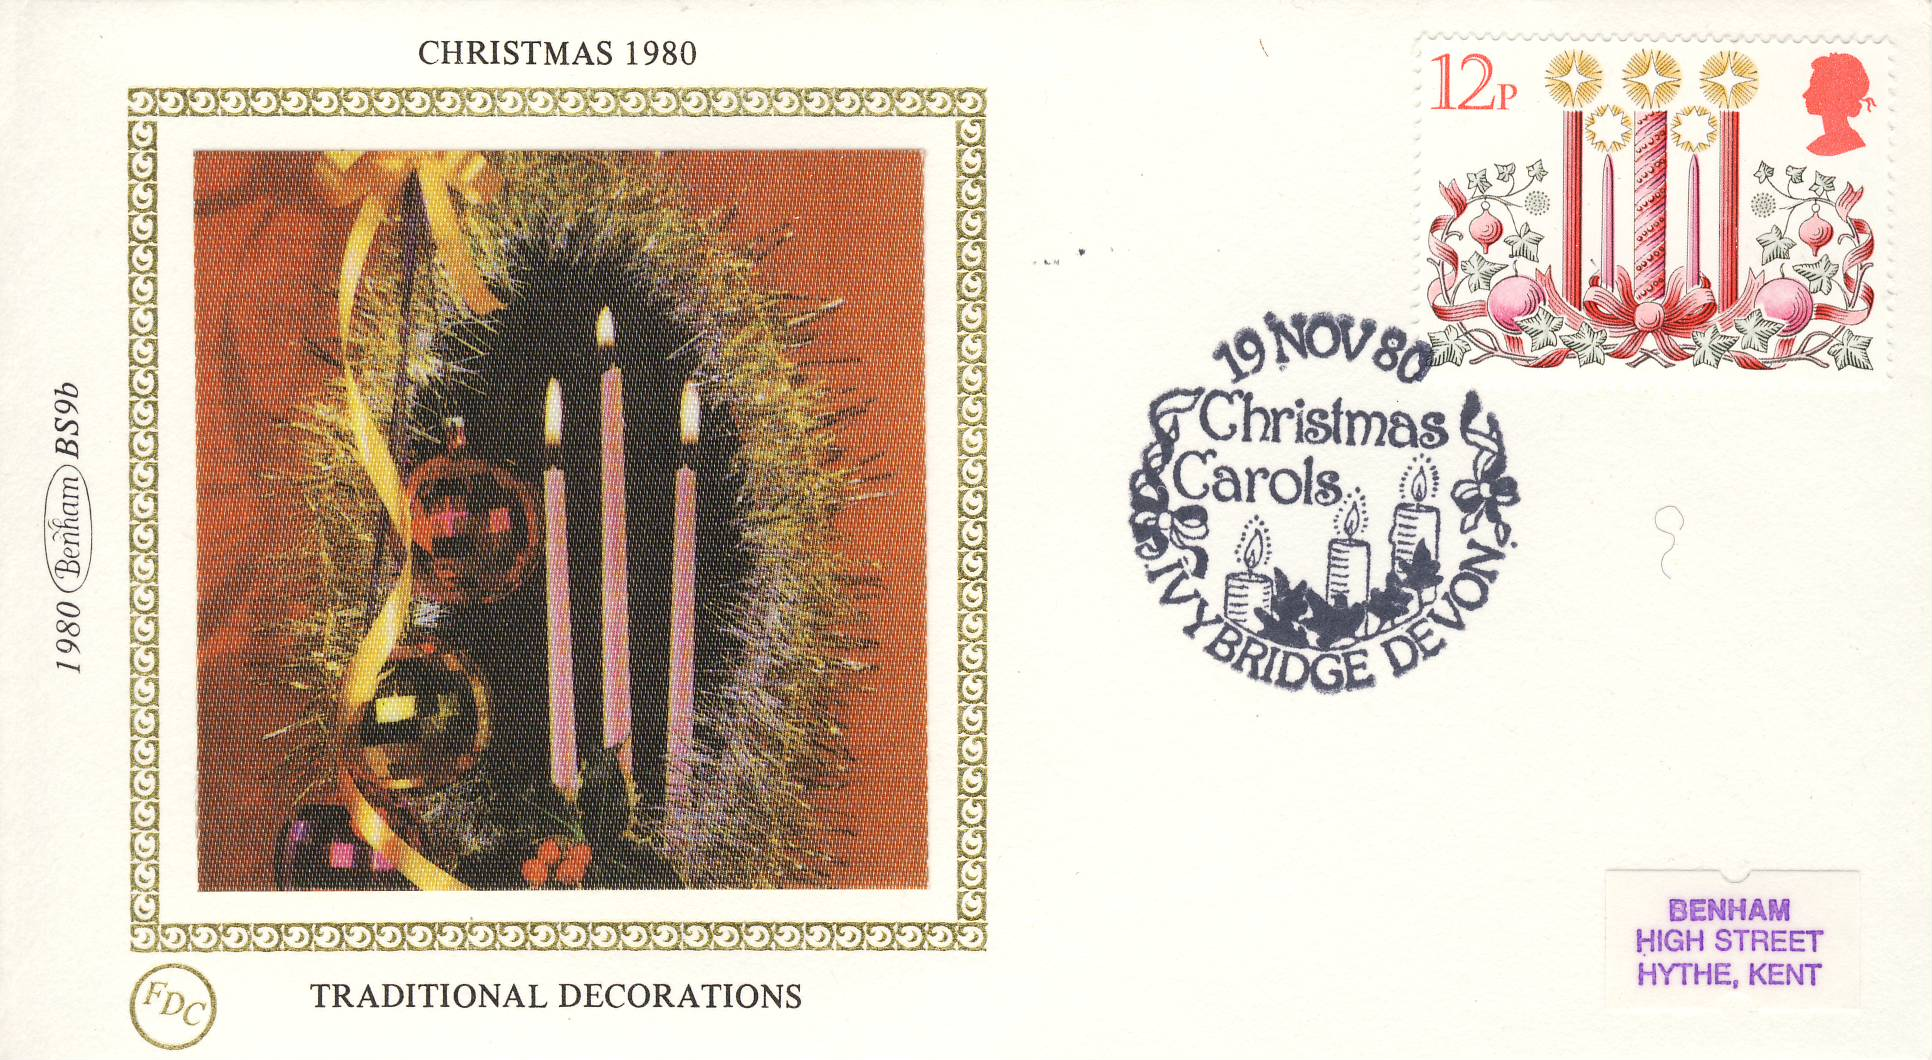 1980 CHRISTMAS BS9b Traditional Decorations Benham Sm Silk Cover refF477Postmarked Christmas Carols IvyBridge Devon. Very good condition. Unsealed with insert card. Ideal for gift